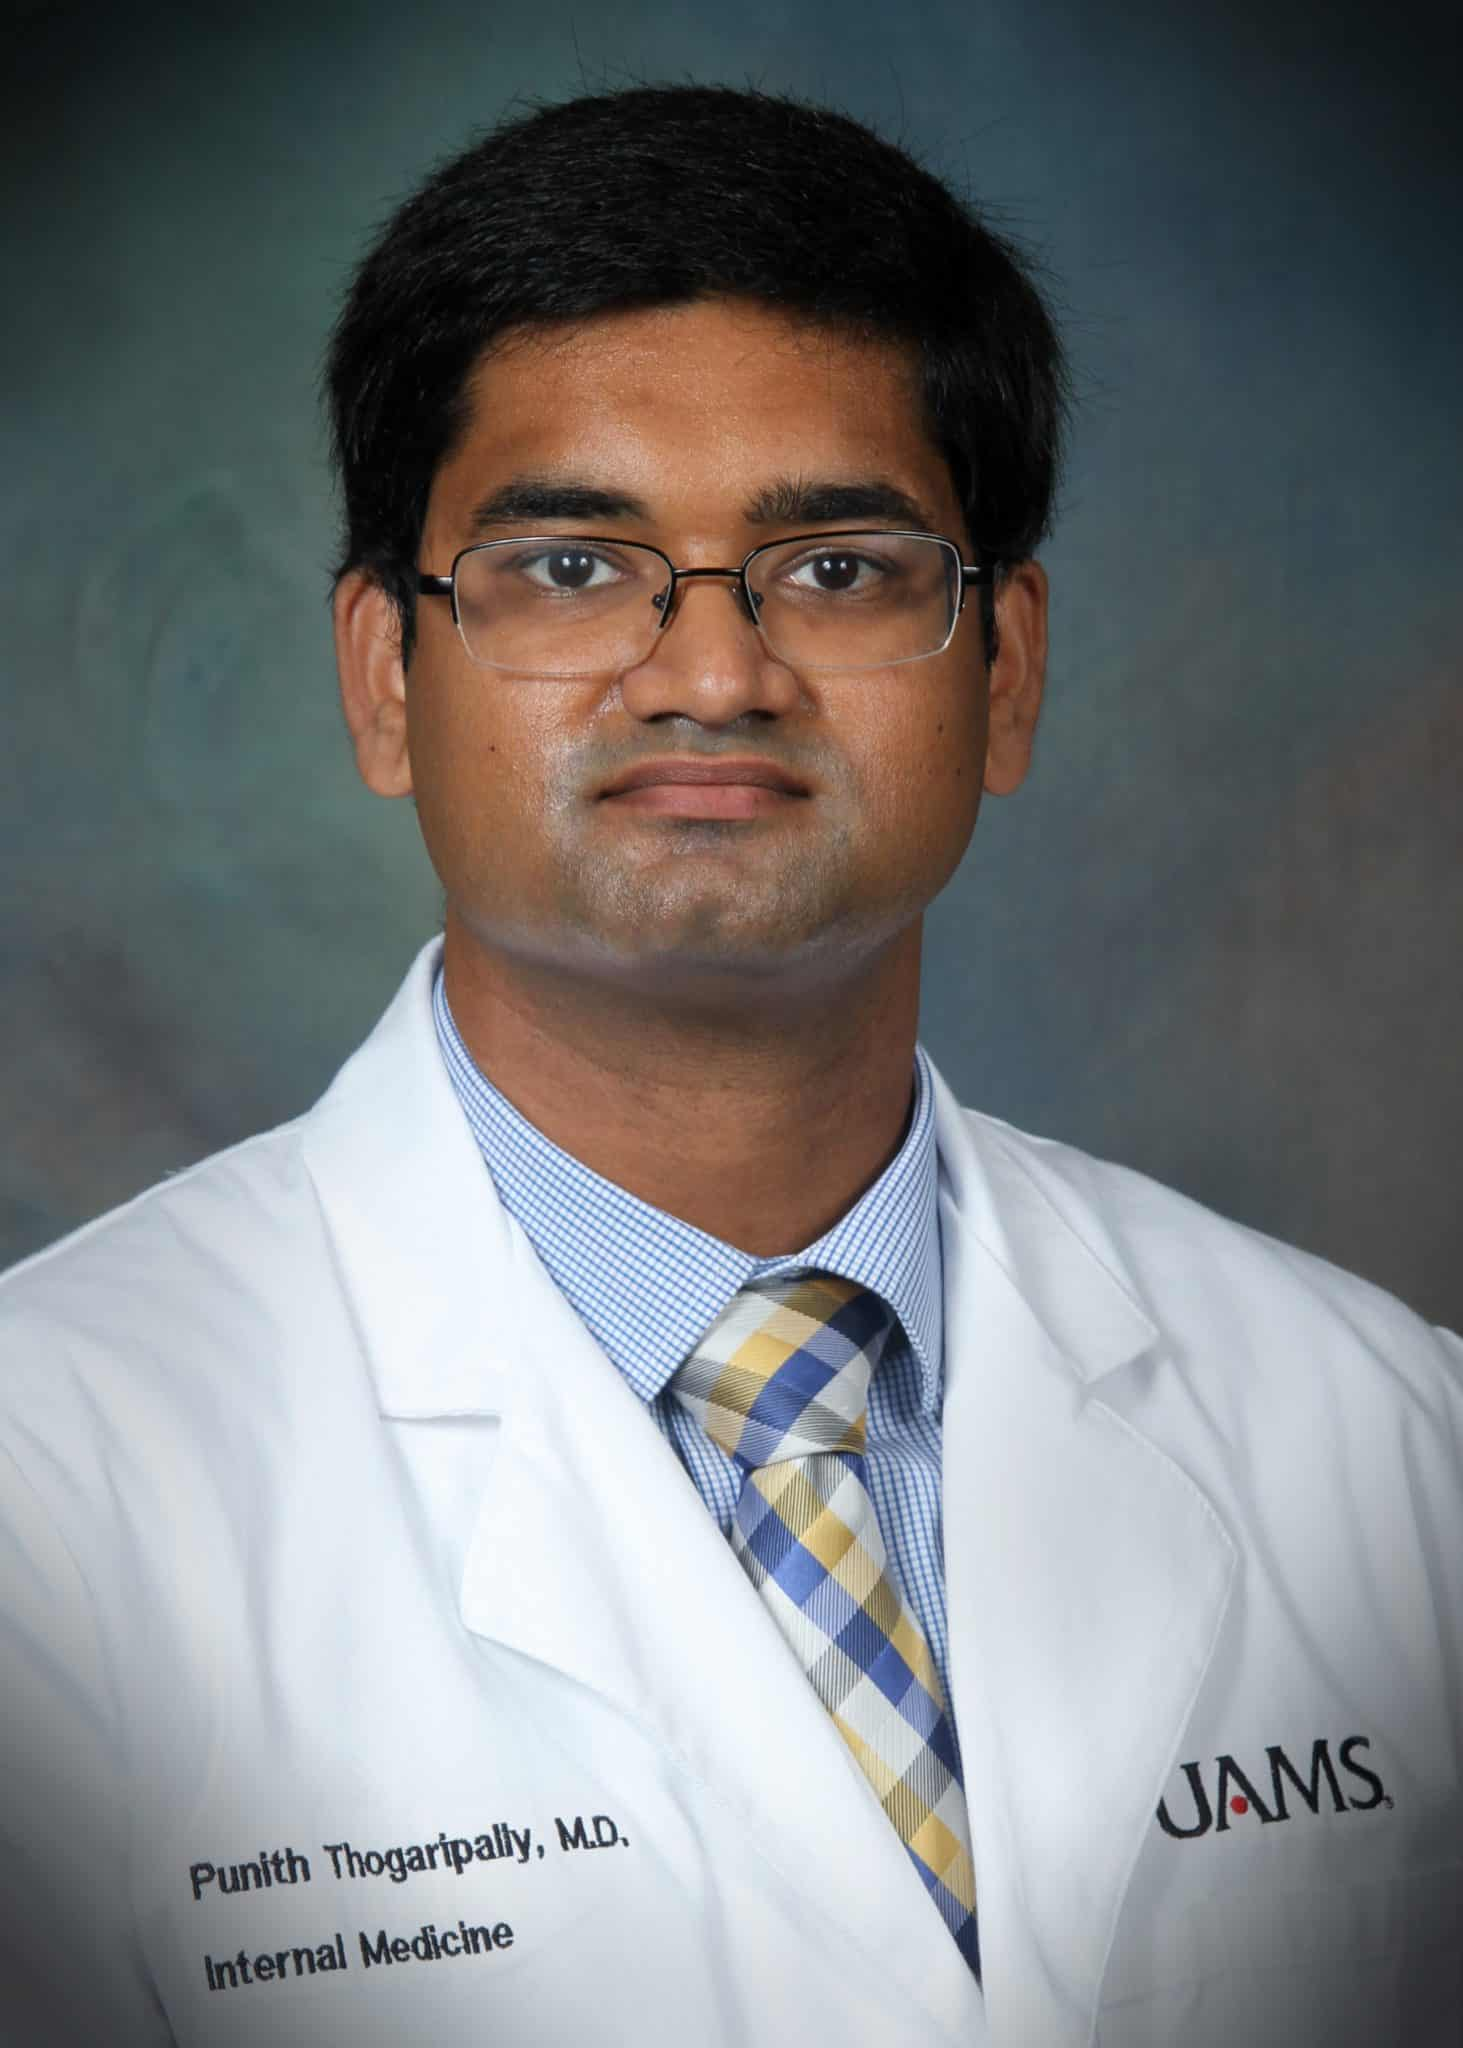 Punith Thogaripally, M.D.